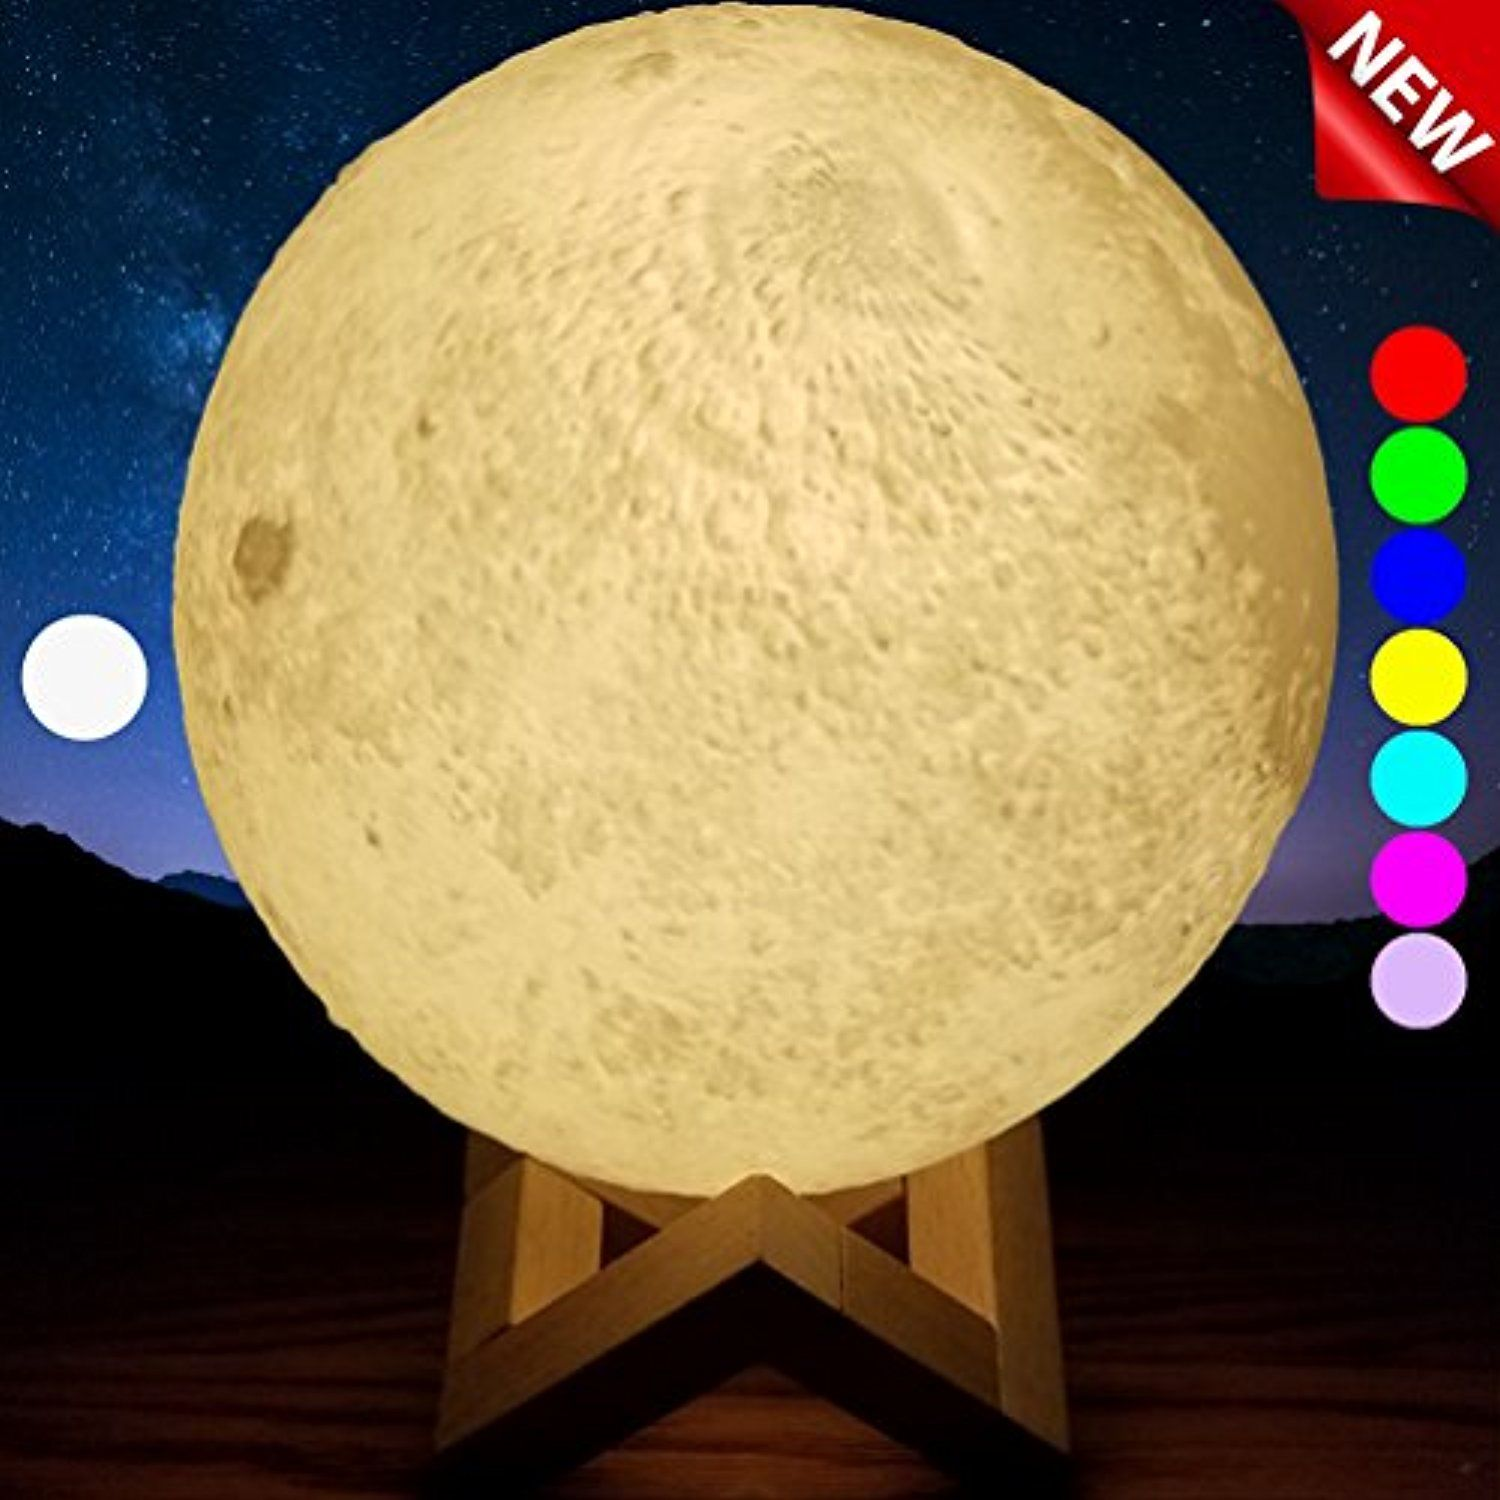 Sensorymoon 3d Printing Moon Lamp Night Light Enchanting 7 Color Changing Up Led Lunar Moonlight Globe Ball With Wood St Night Light Wood Stand Bedroom Decor